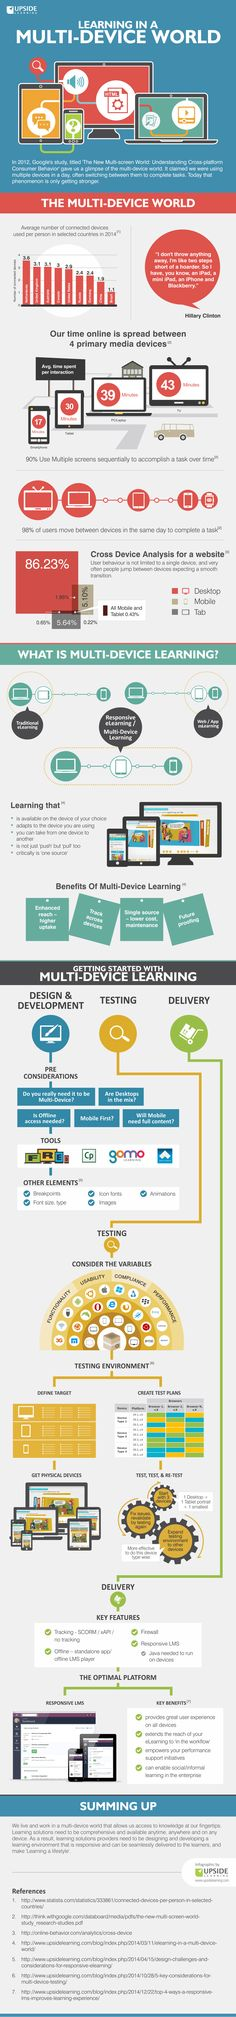 Learning in a Multi-device World Infographic explores the Multidevice World and explains how you can get started with multi-device learning